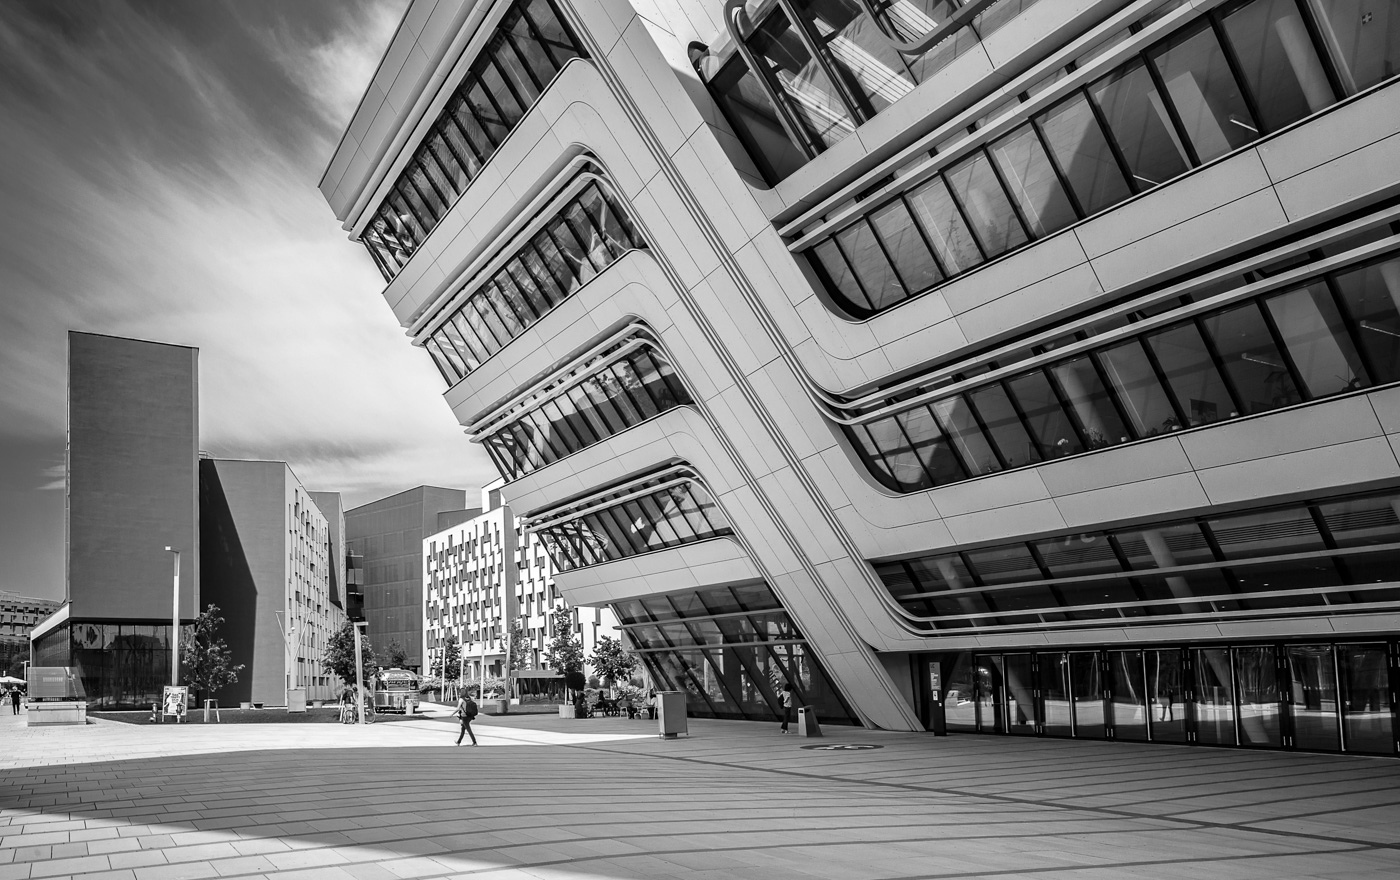 'Architectural leaning' by Marina Hauer